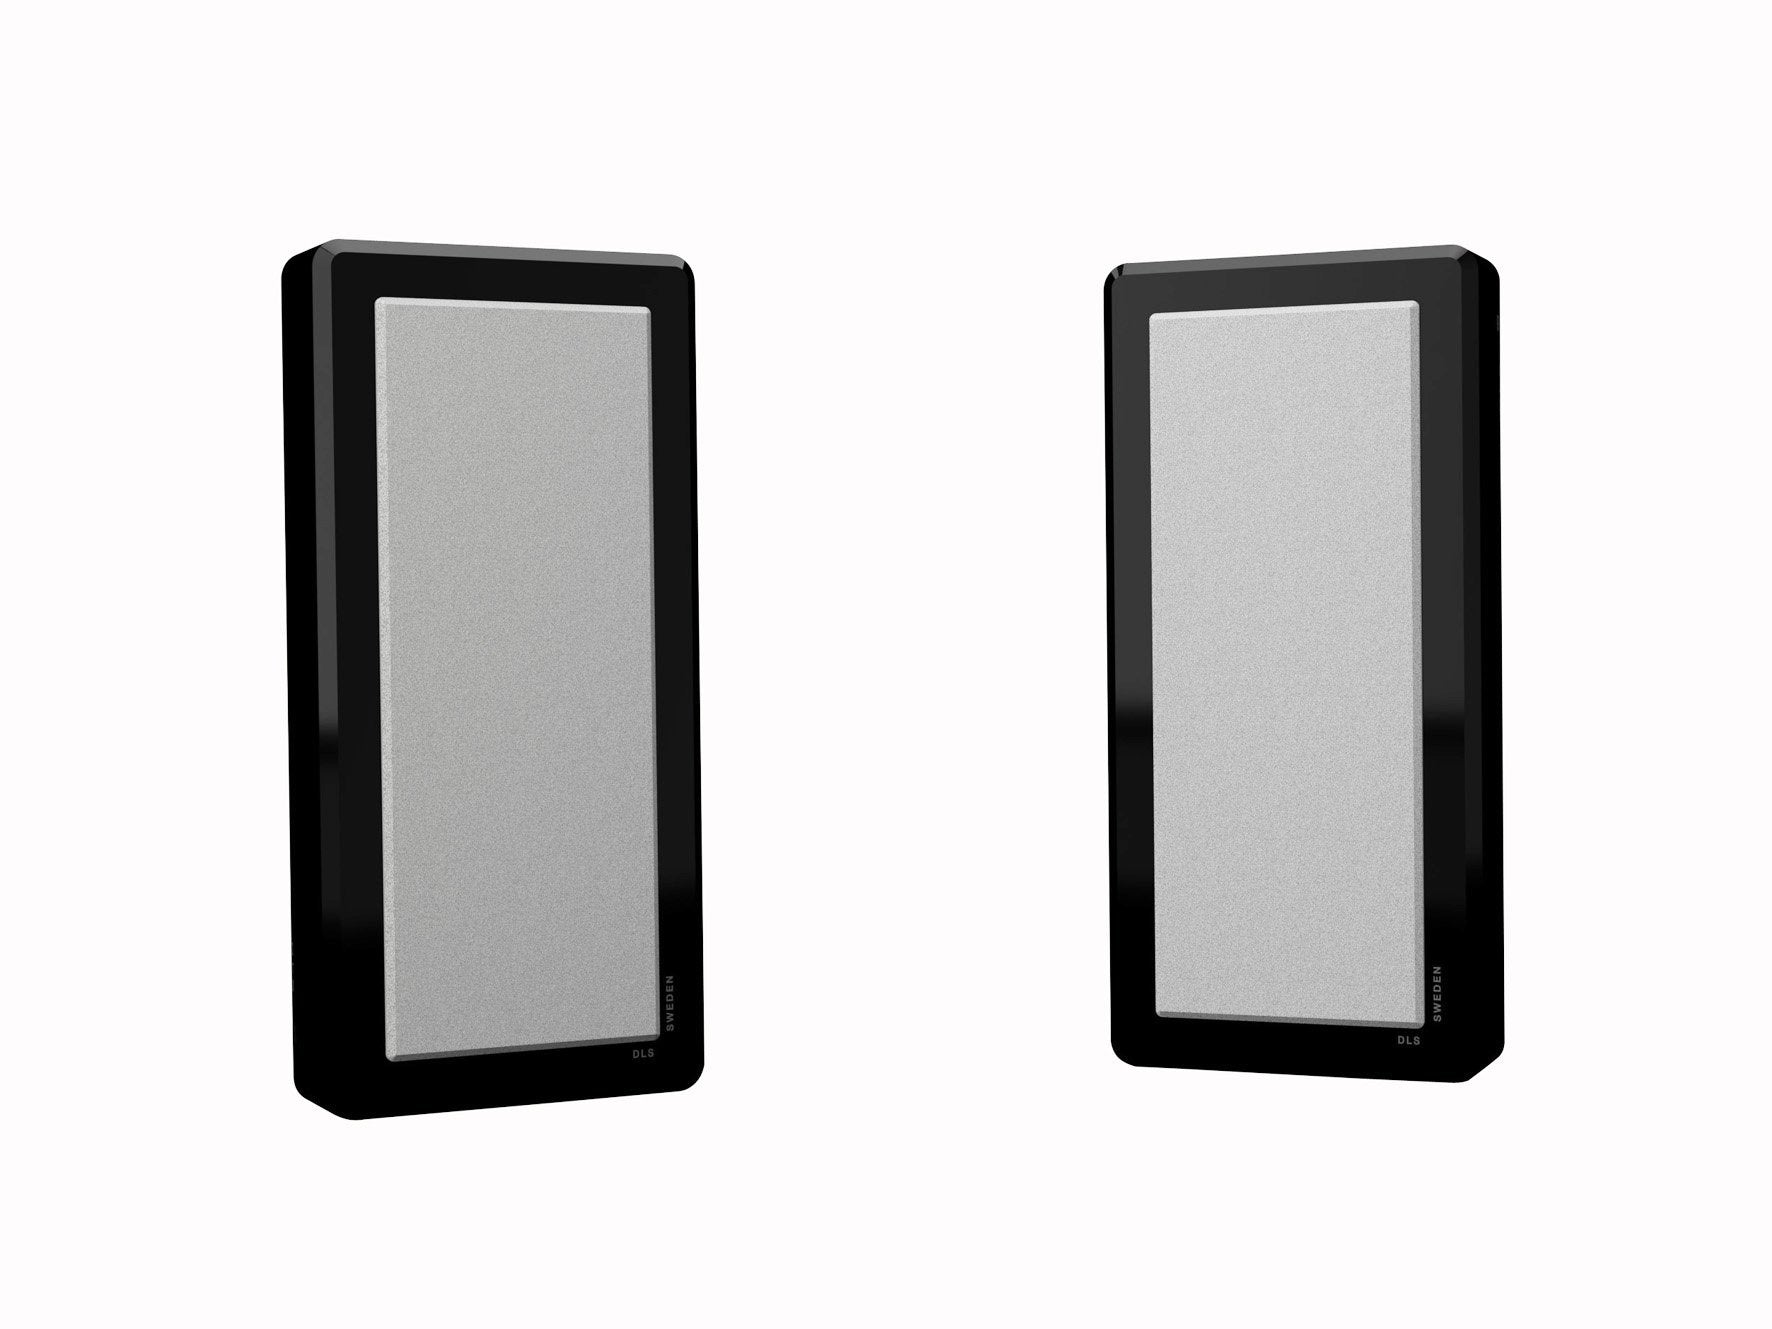 DLS Flatbox M-One On-wall speaker - Pair